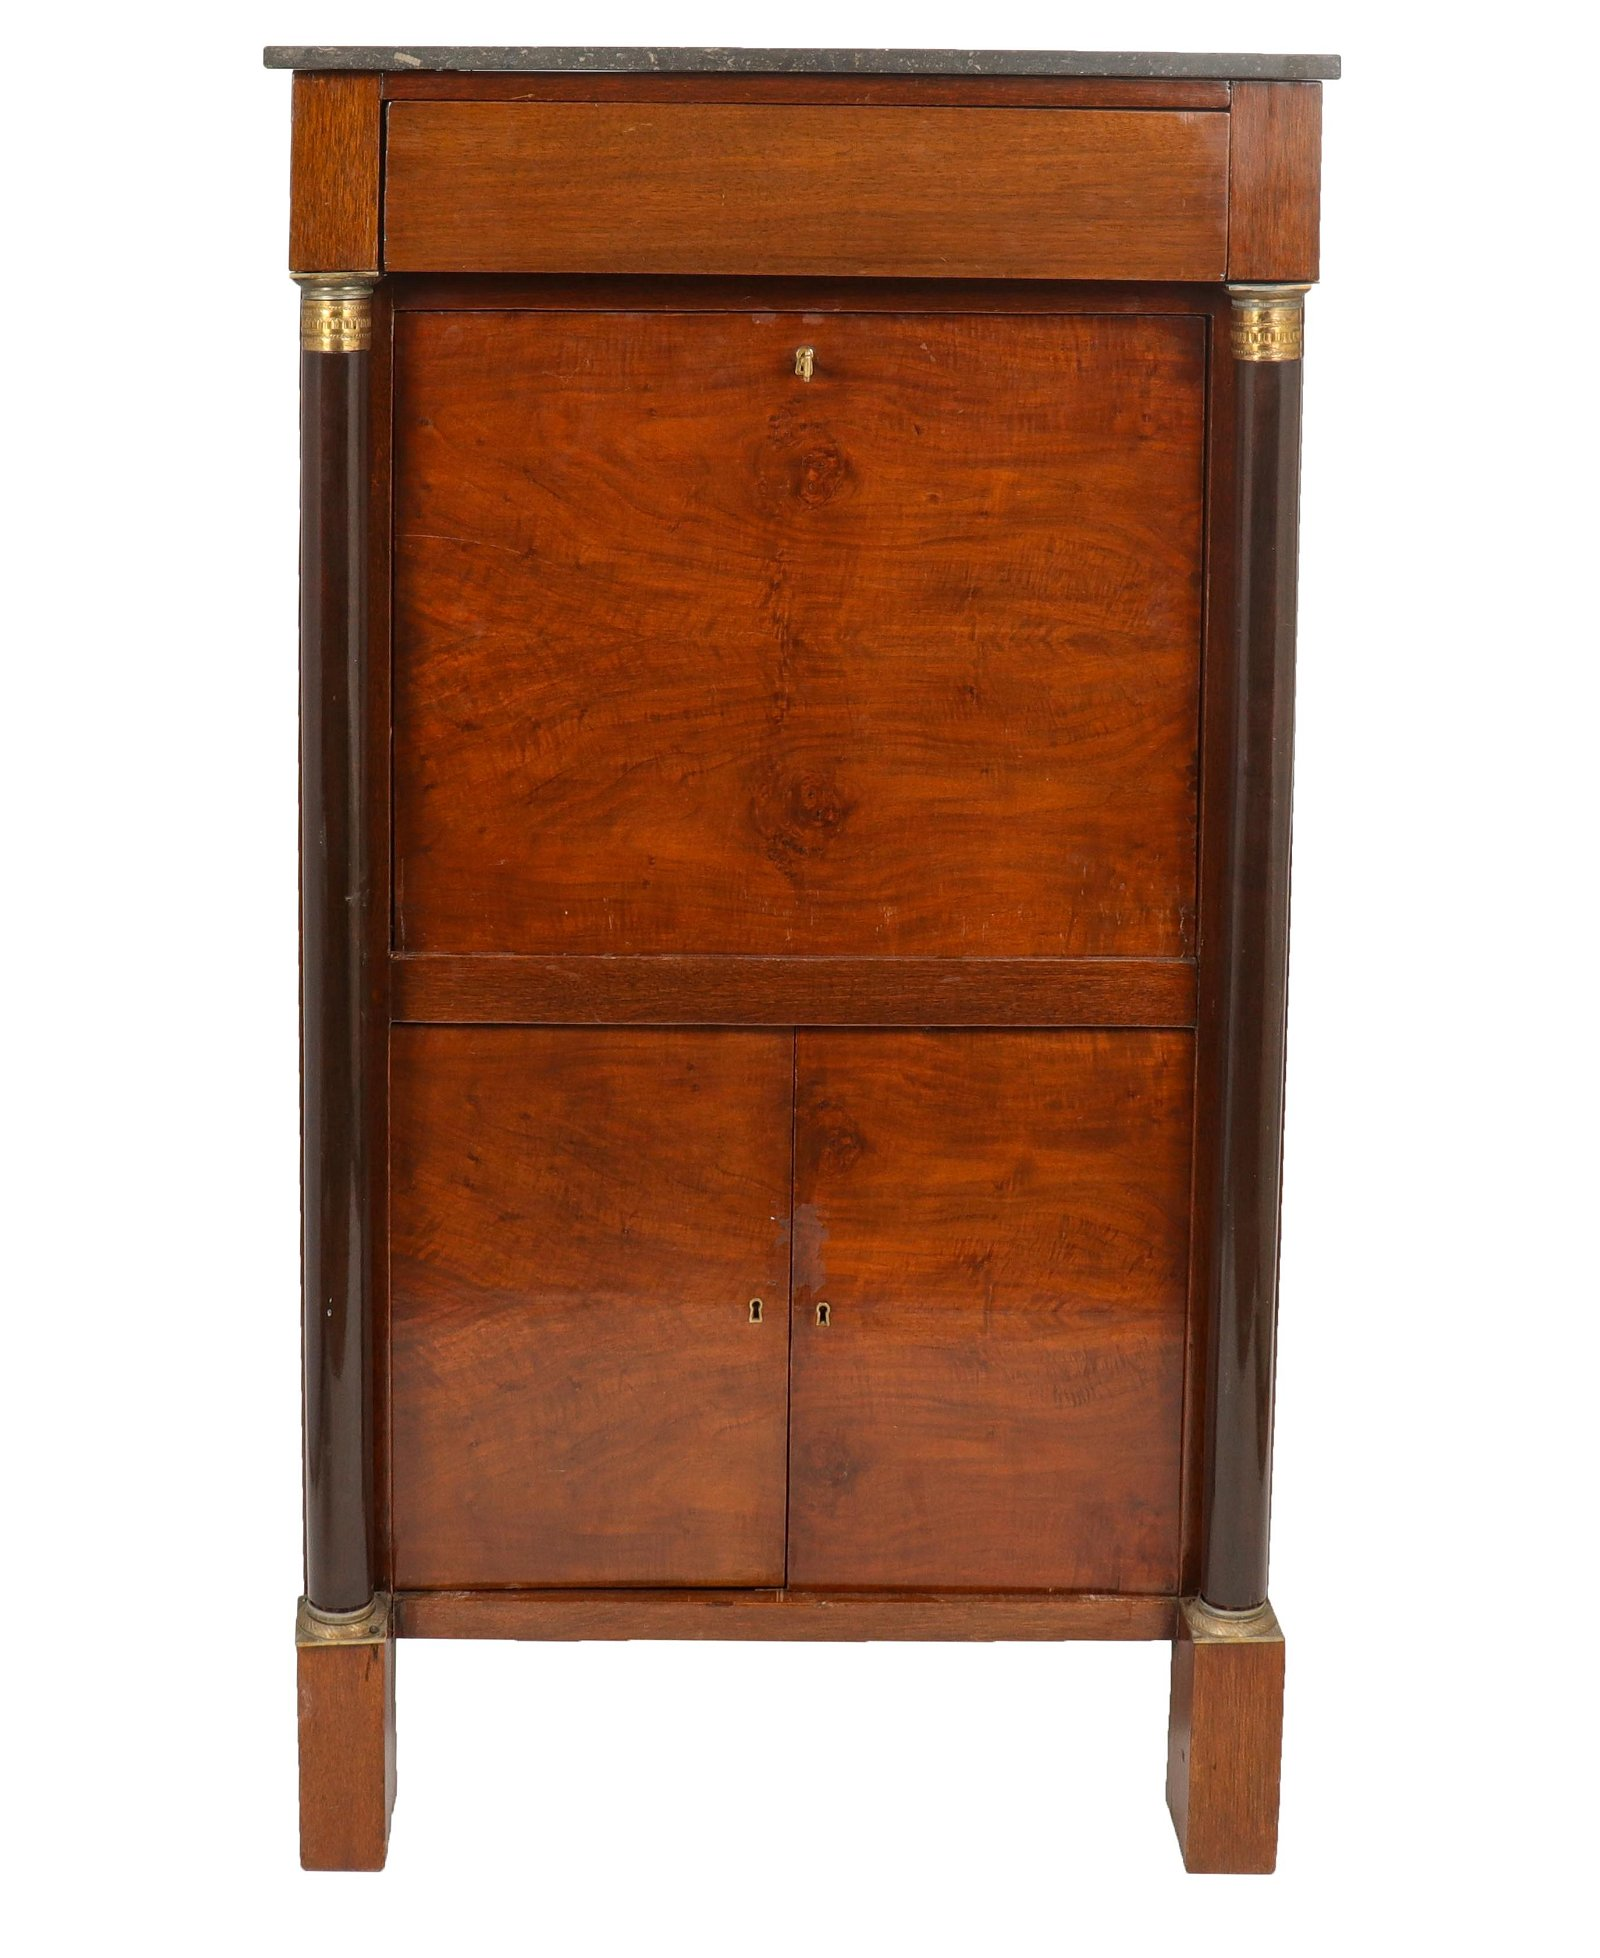 French Empire Style Drop Front Secretary Cabinet